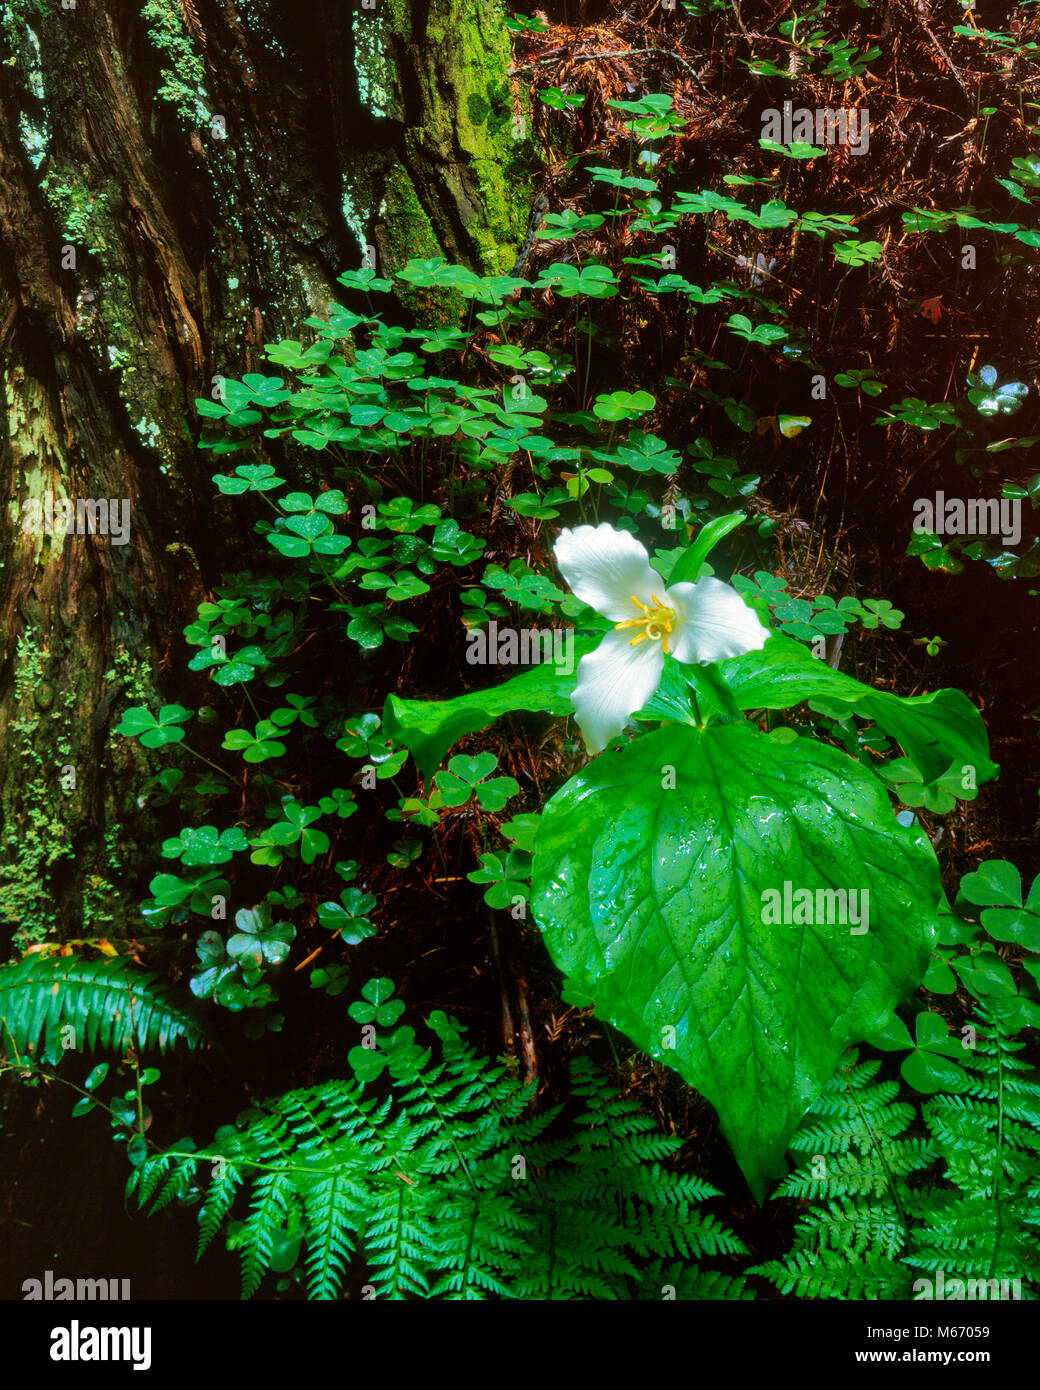 Trillium, Trillium ovatum, Redwood Trunk, Redwood National Park, California - Stock Image